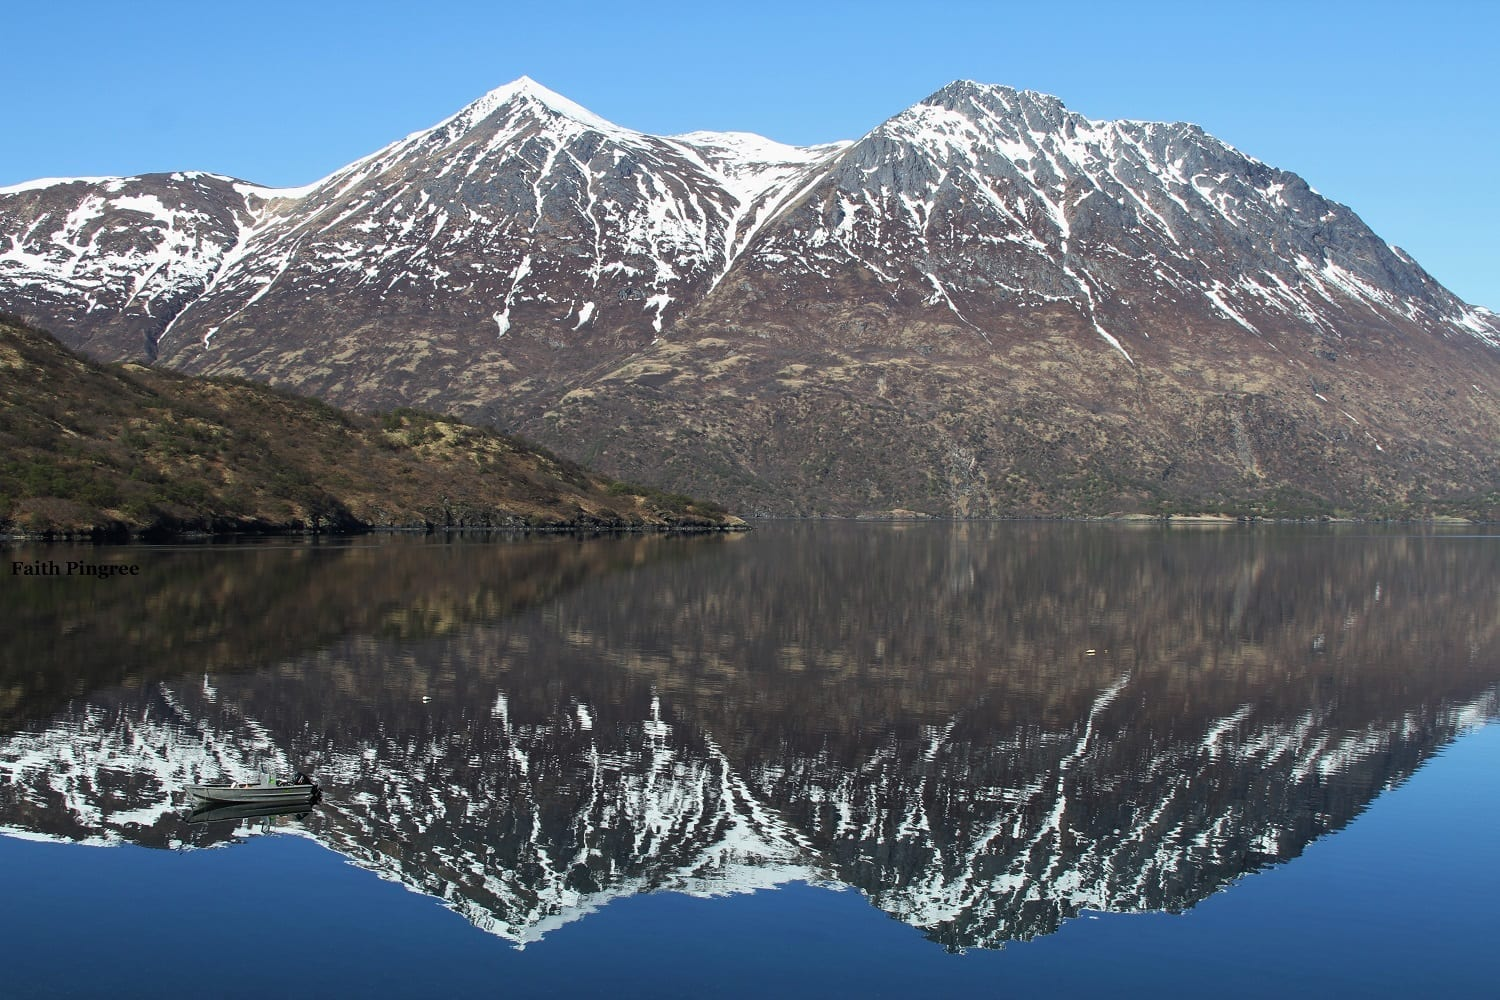 Snow dusted mountains with lake reflections